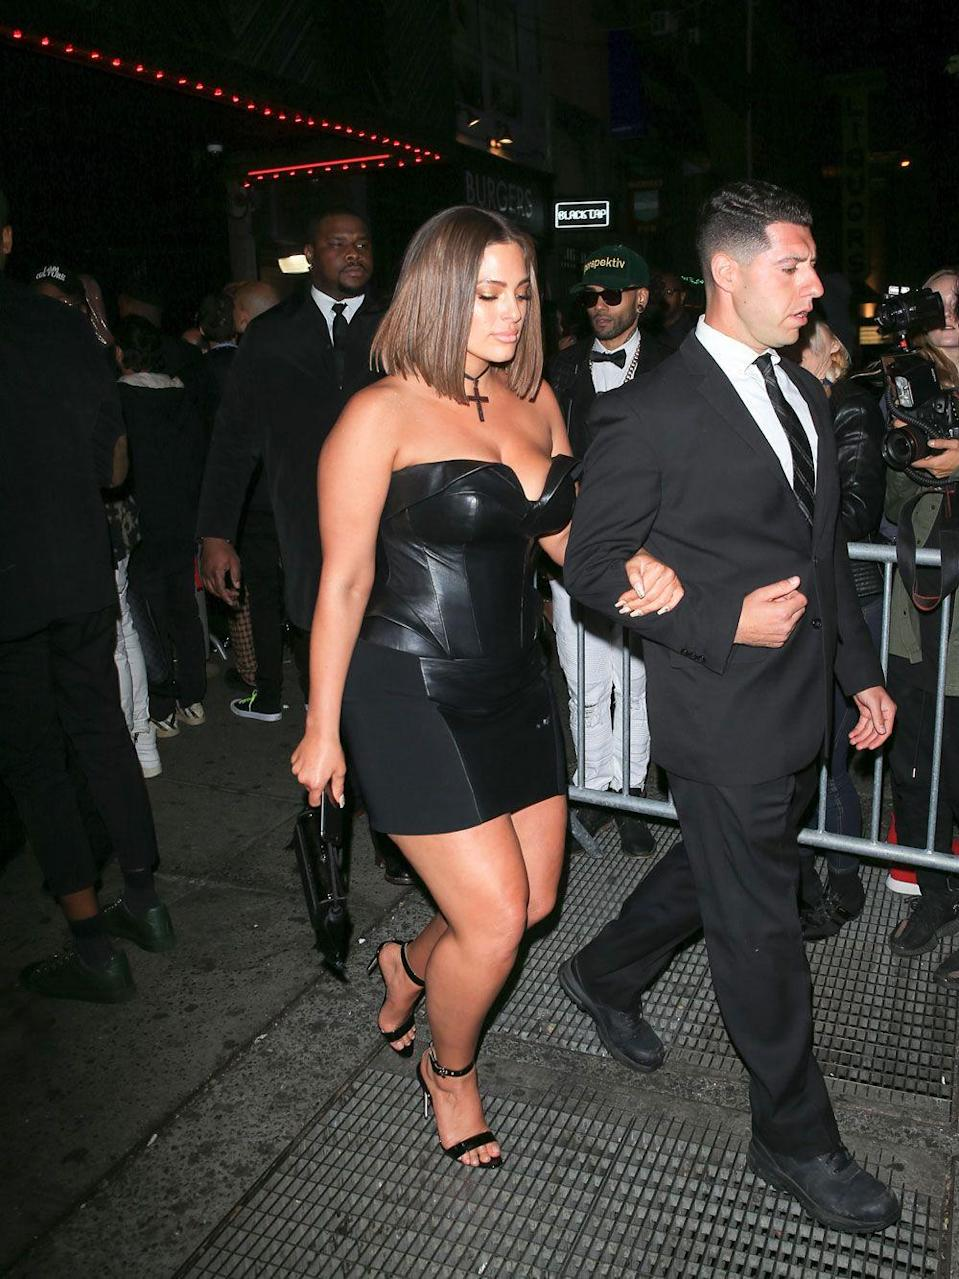 <p>At the 2018 Met Gala Afterparty: After completing nailing her Met Gala appearance in a floor-length gold gown, Ashley slipped into a black mini leather dress for the afterparty.</p>